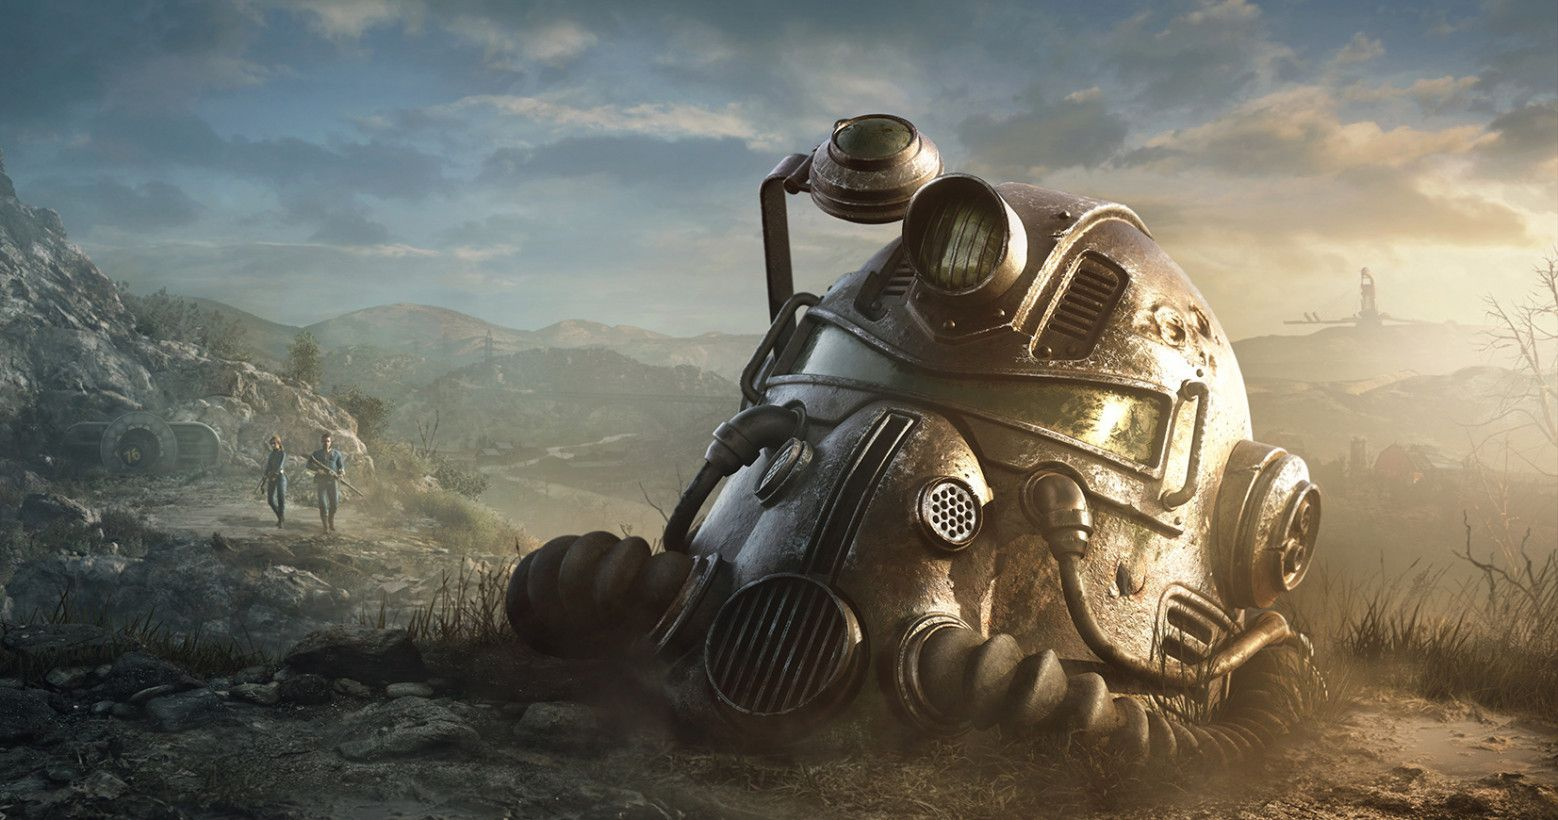 15 Things We Already Know About Fallout 76 (And 10 Very Likely Rumors) f55c8eb84003